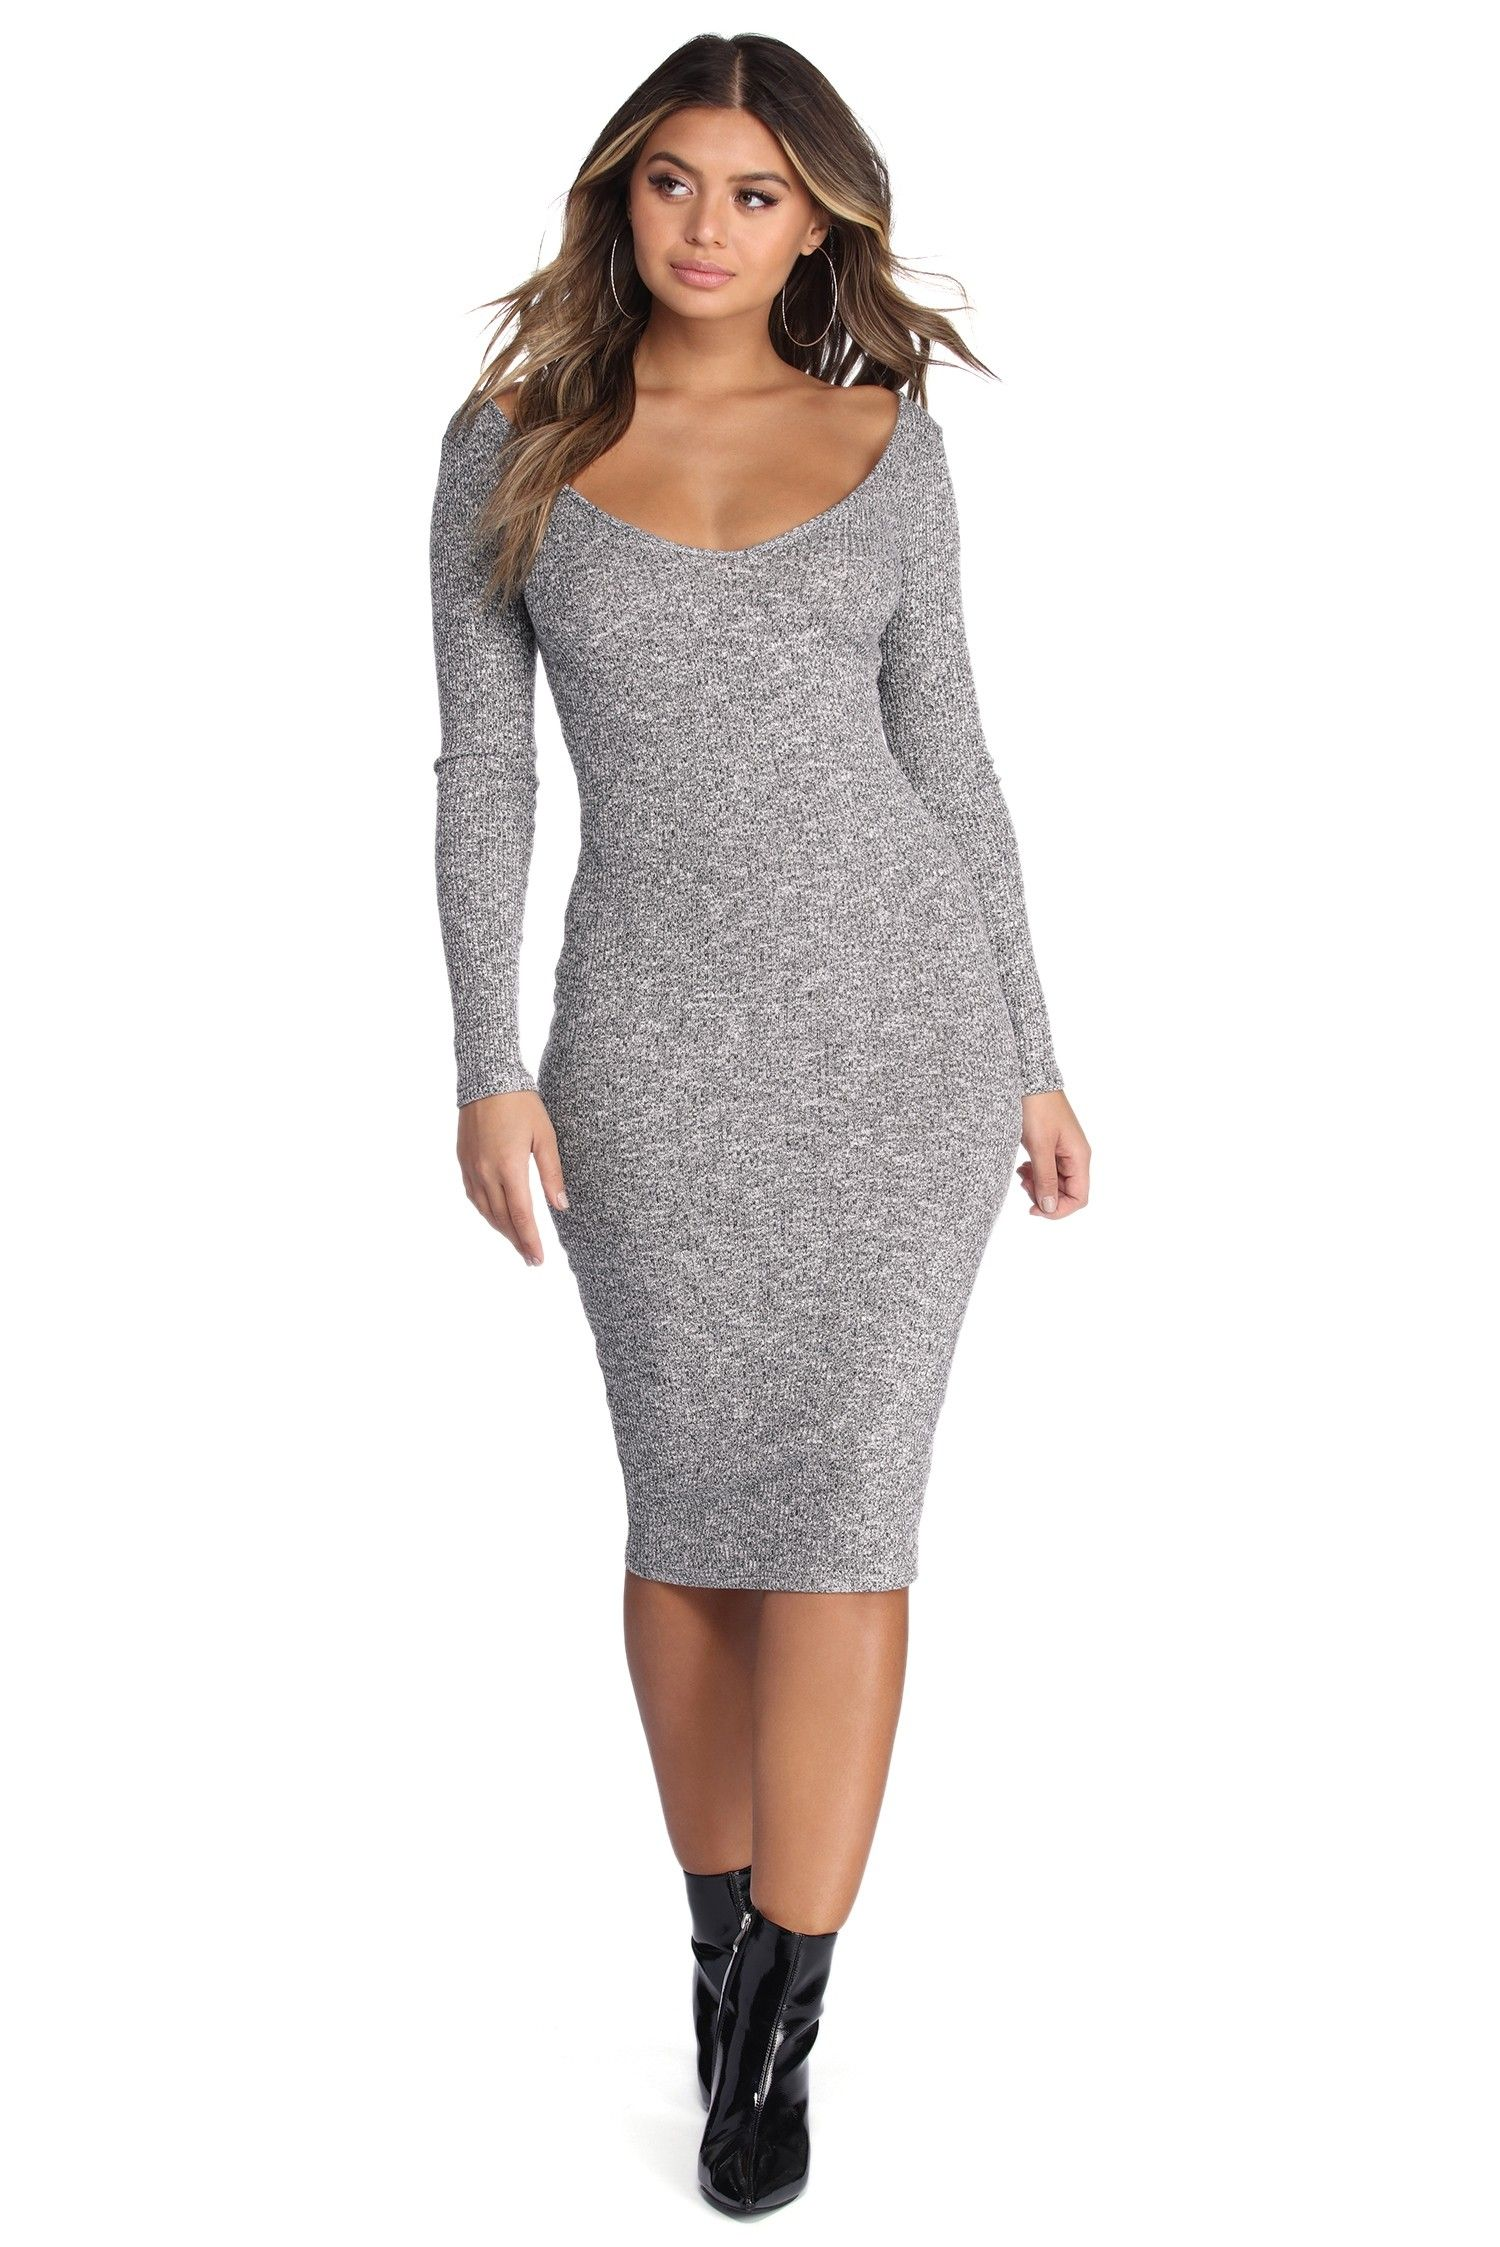 On Another Level Sweater Dress Shop Casual Dresses Casual Dresses Casual Dresses For Women [ 2247 x 1500 Pixel ]